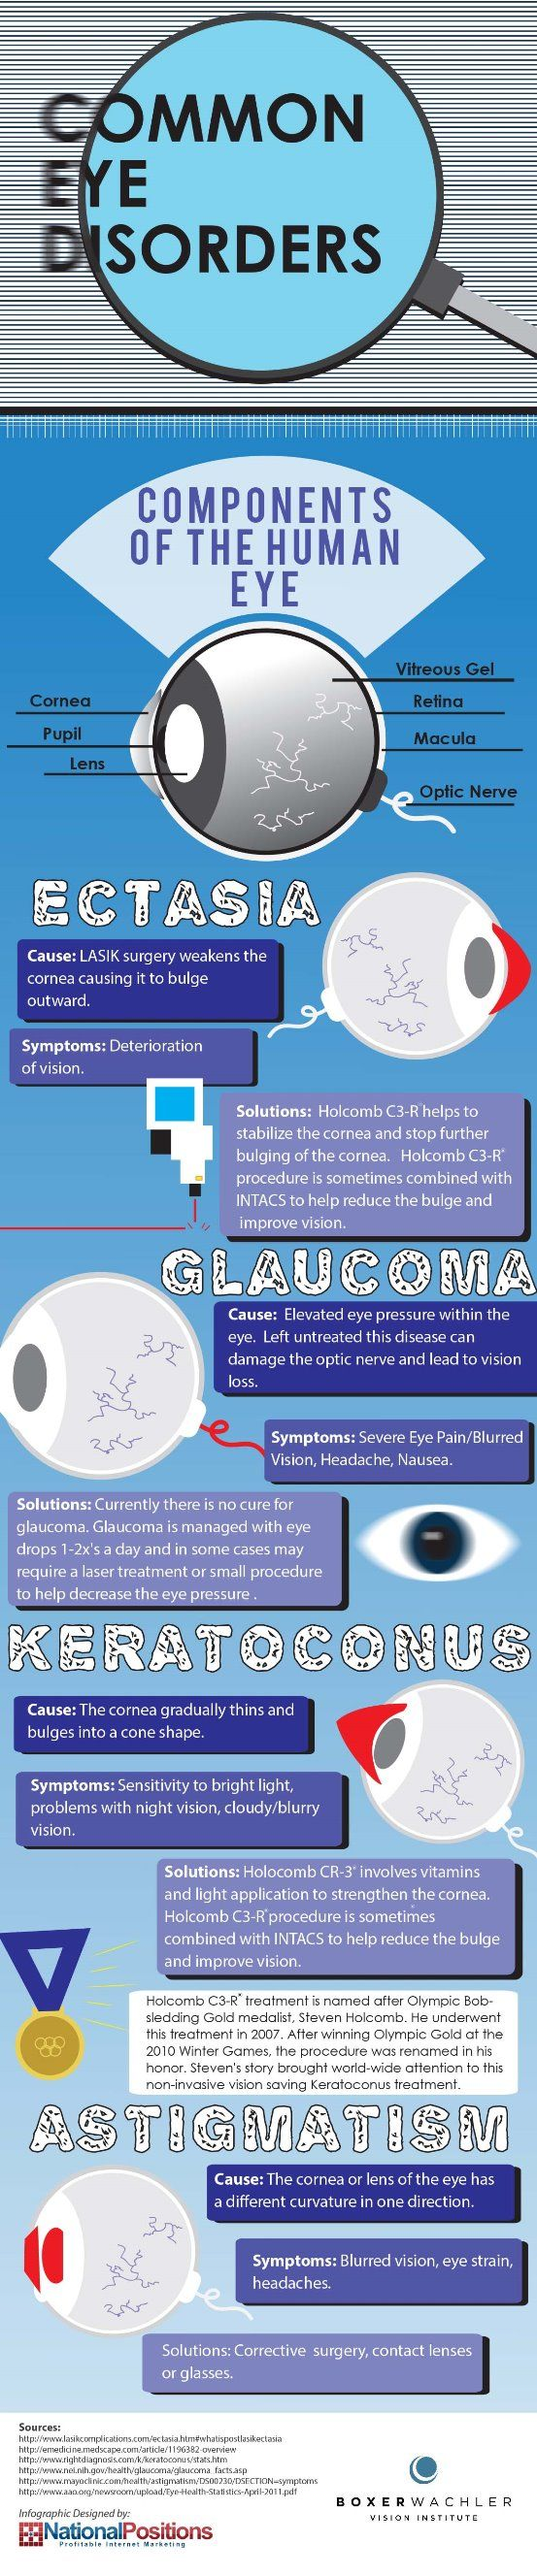 Common Eye Disorders - Take a look at this infographic for some basic info on common eye disorders such as Keratoconus and Glaucoma.   - sponsored